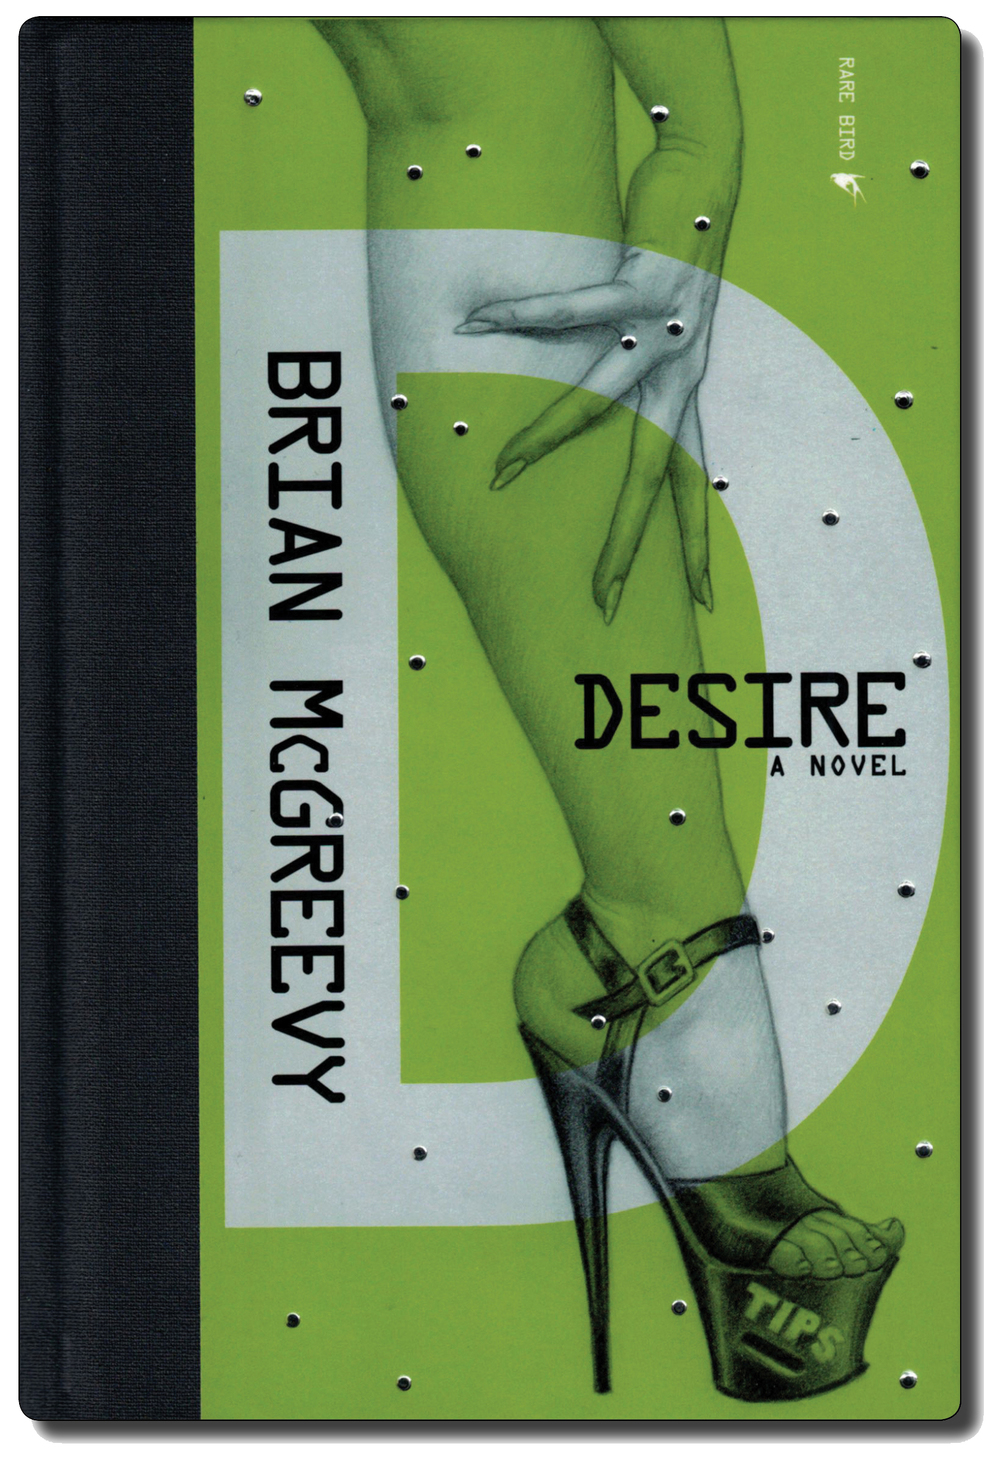 Desire by Brian McGreevy | a prequel to Hemlock Grove